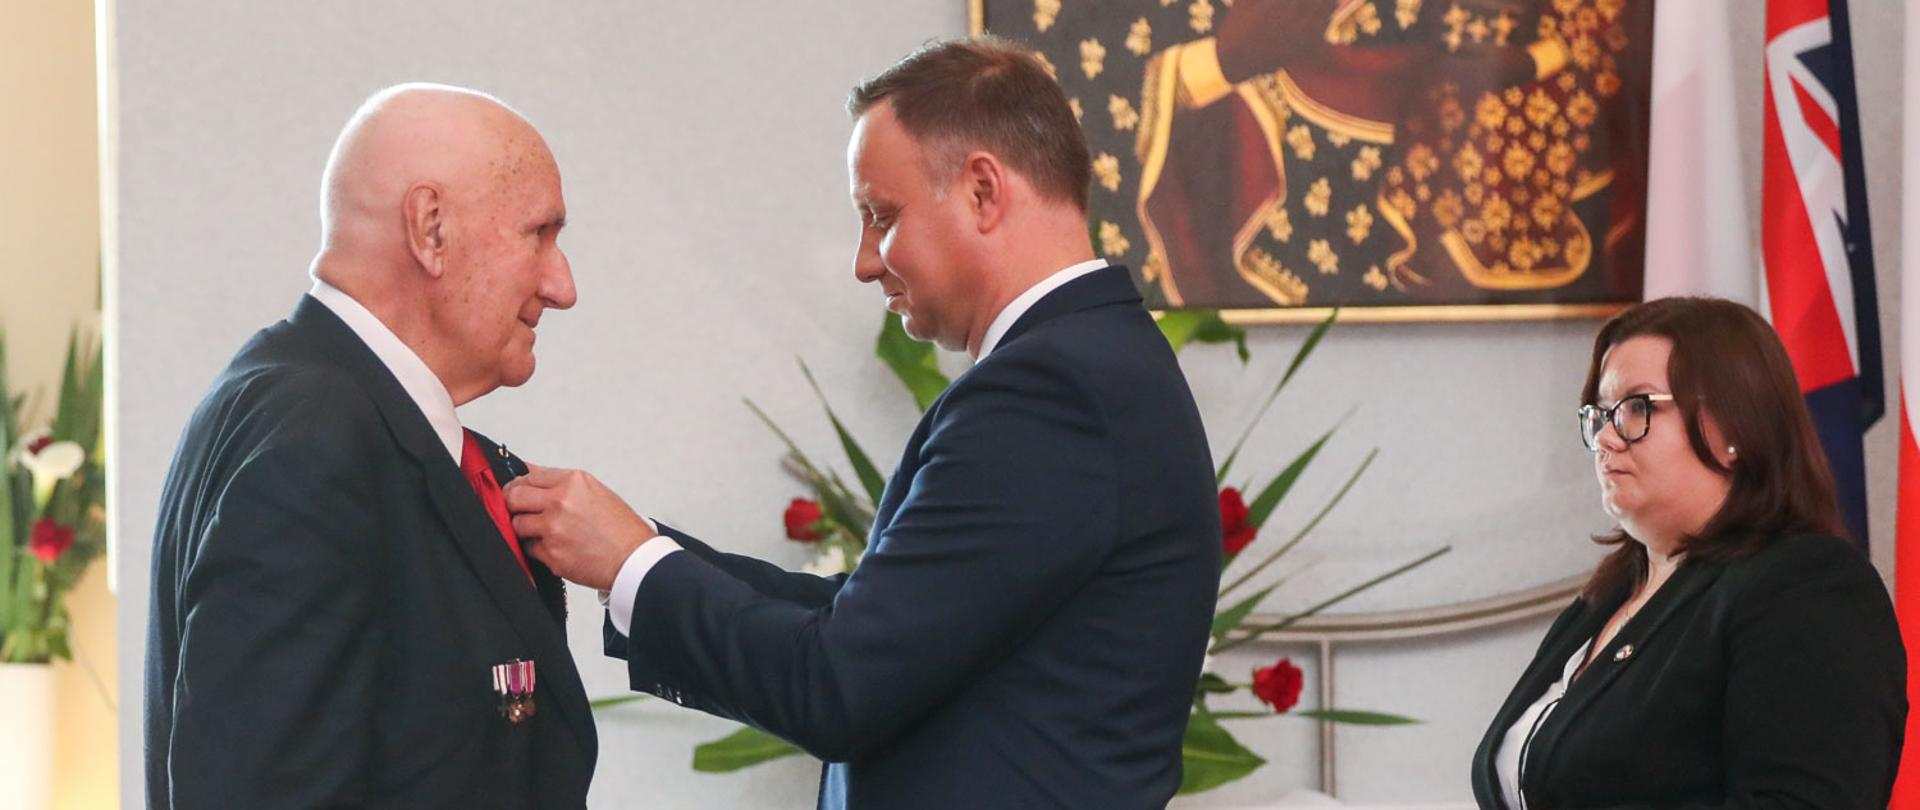 Photo: Grzegorz Jakubowski / KPRP. During his visit to Australia in 2018, President Andrzej Duda awarded Jerzy Łuk-Kozika OAM with the Officer's Cross of the Order of Merit of the Republic of Poland